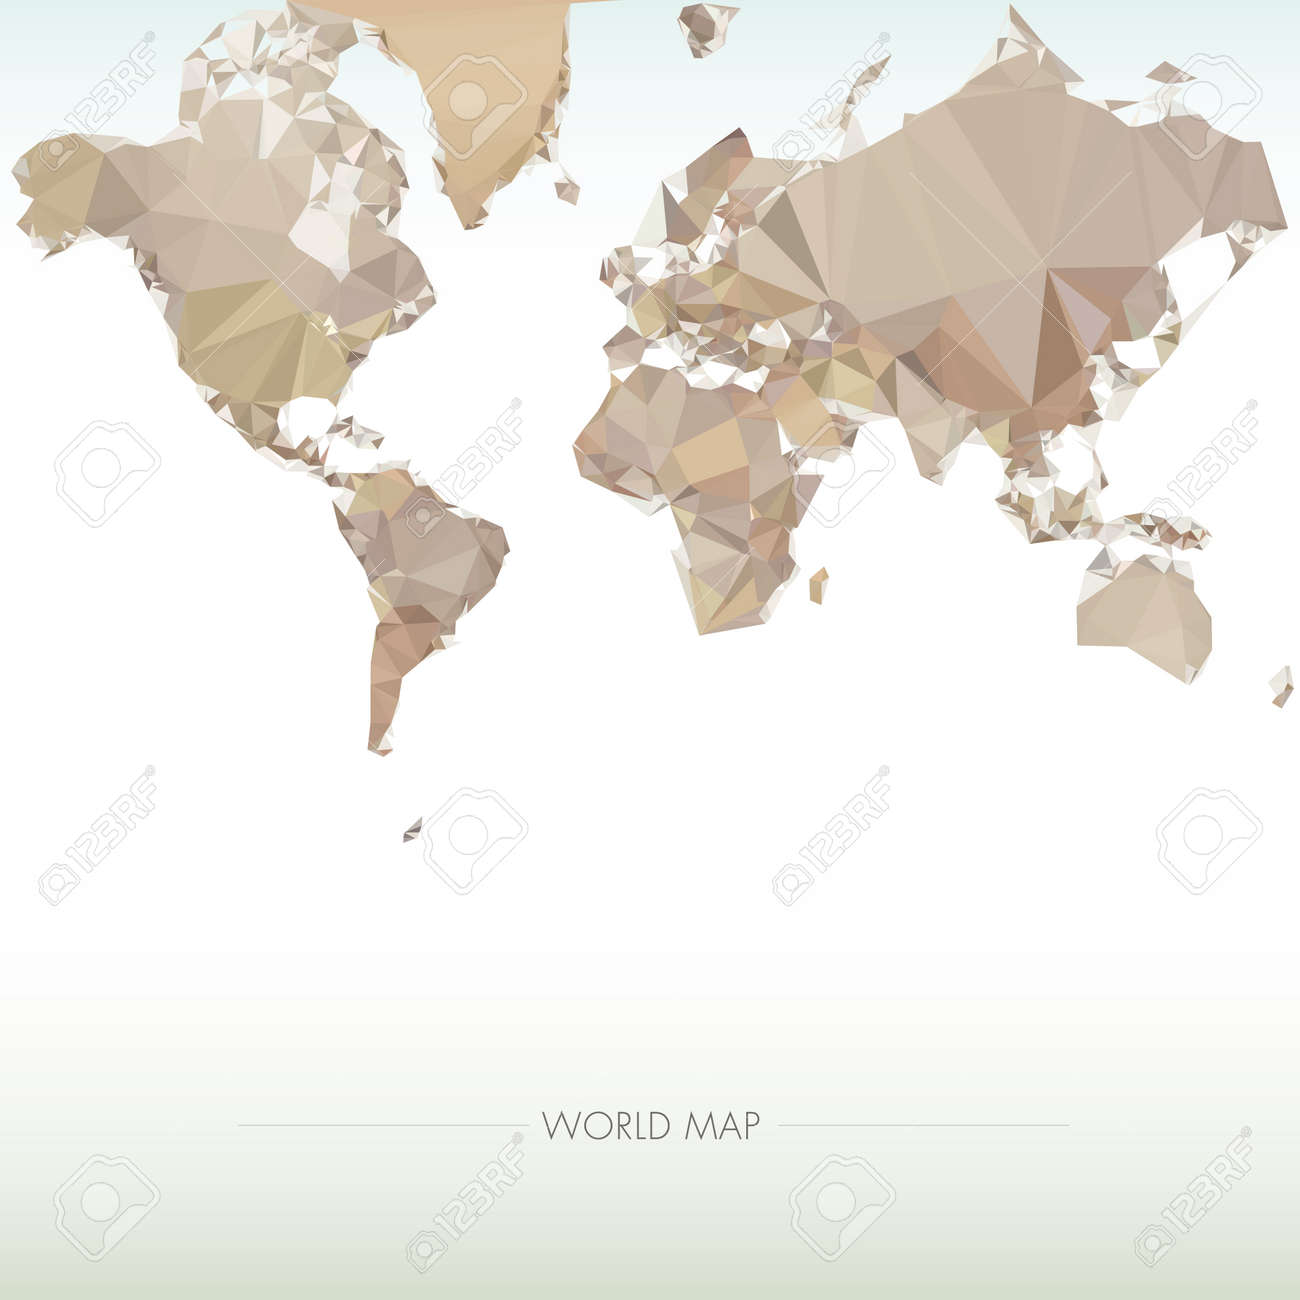 Earth World Map. Low Poly Vector Illustration Stock Vector   38167873